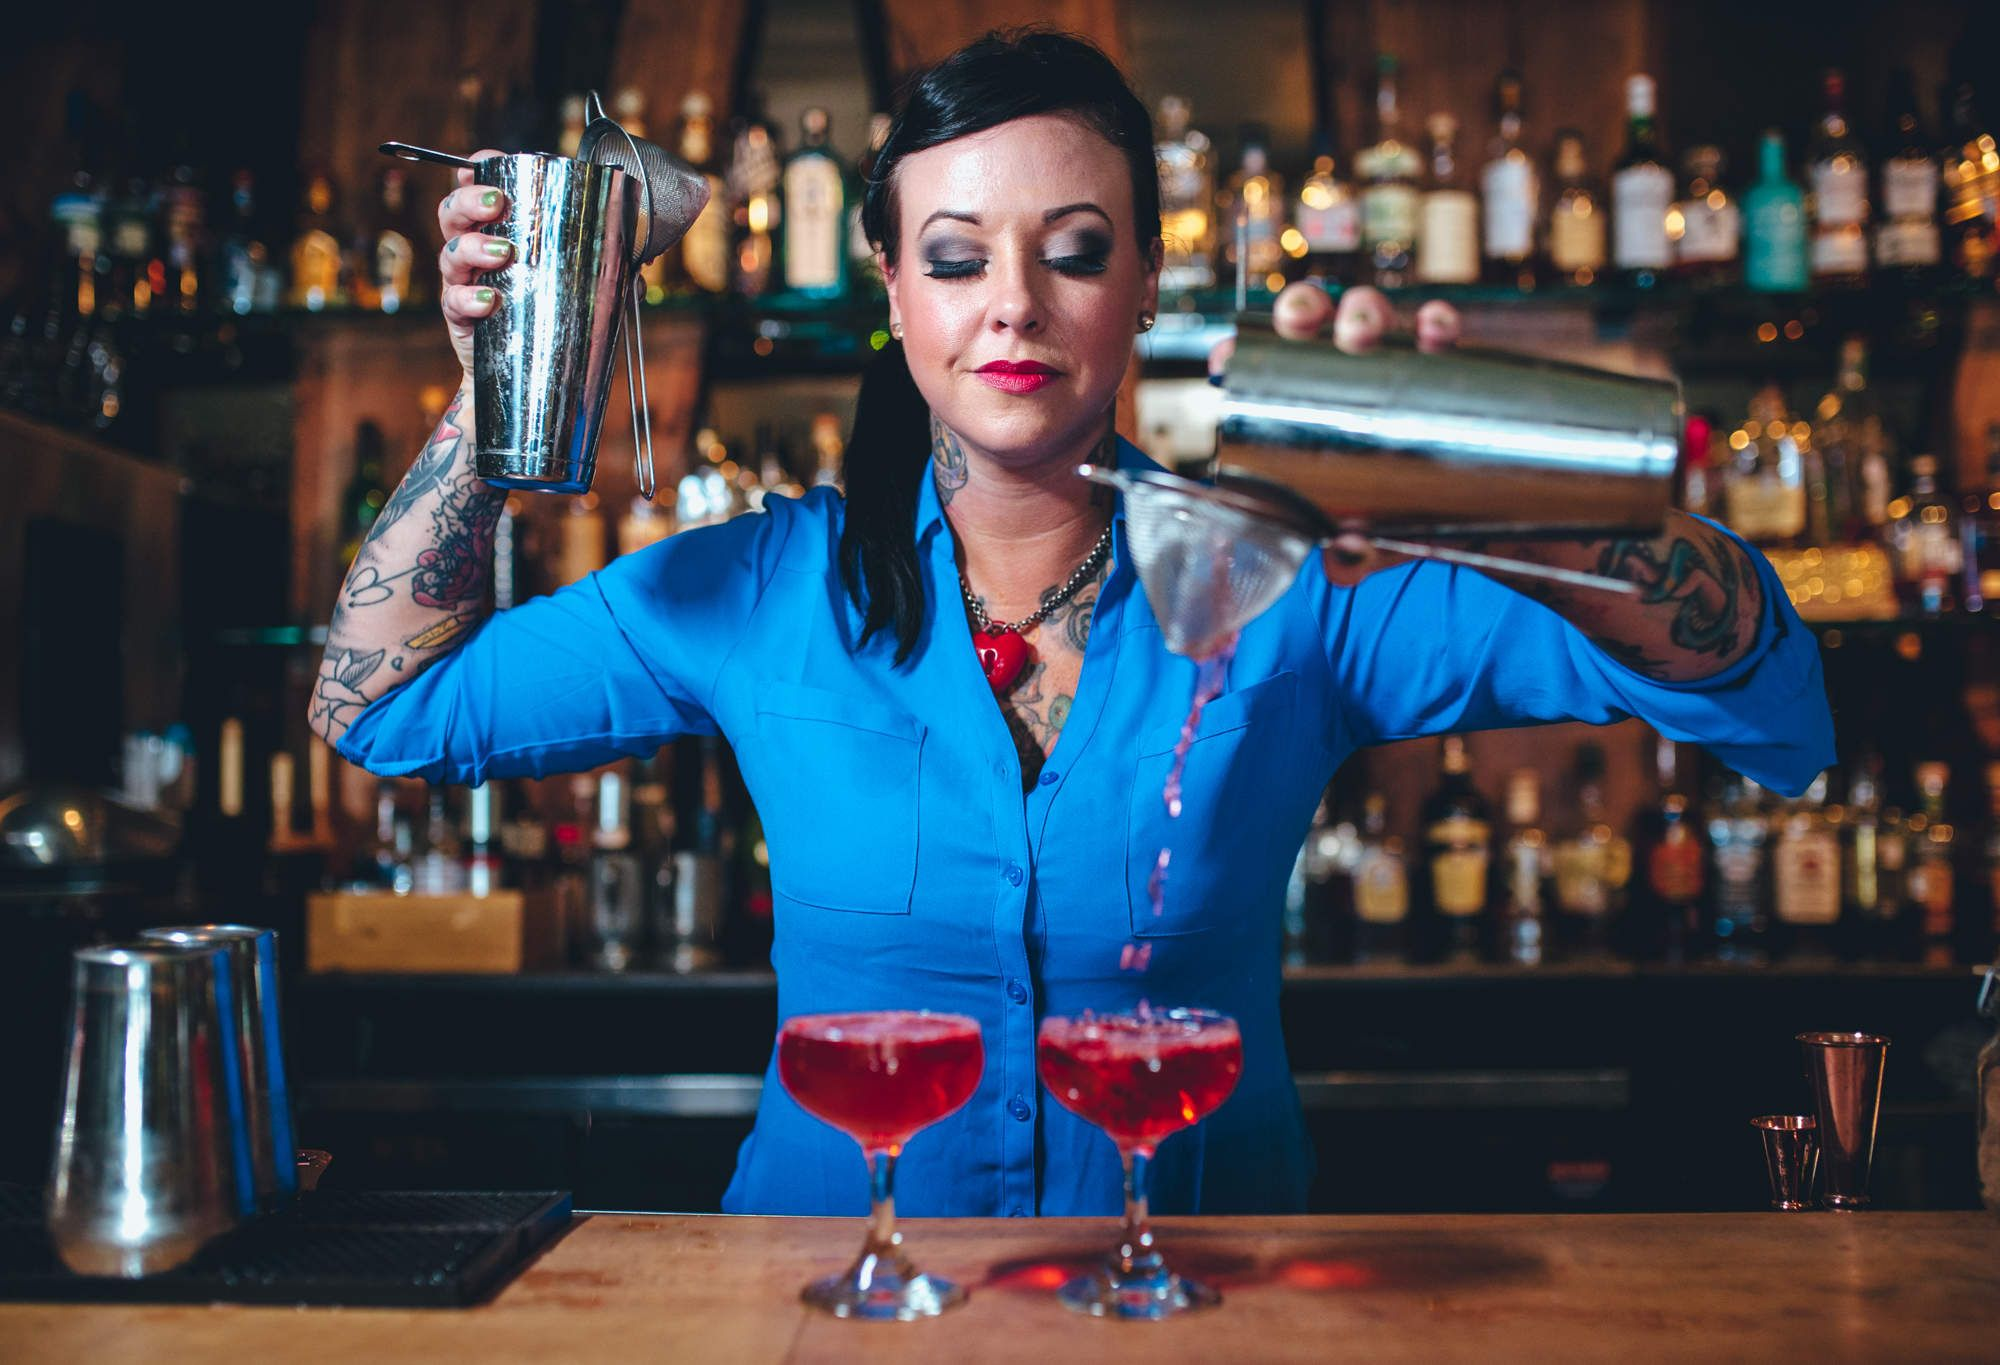 The Most Overrated And Underrated Cocktails According To Houston Bartenders Bartender Cocktails Houston Bars